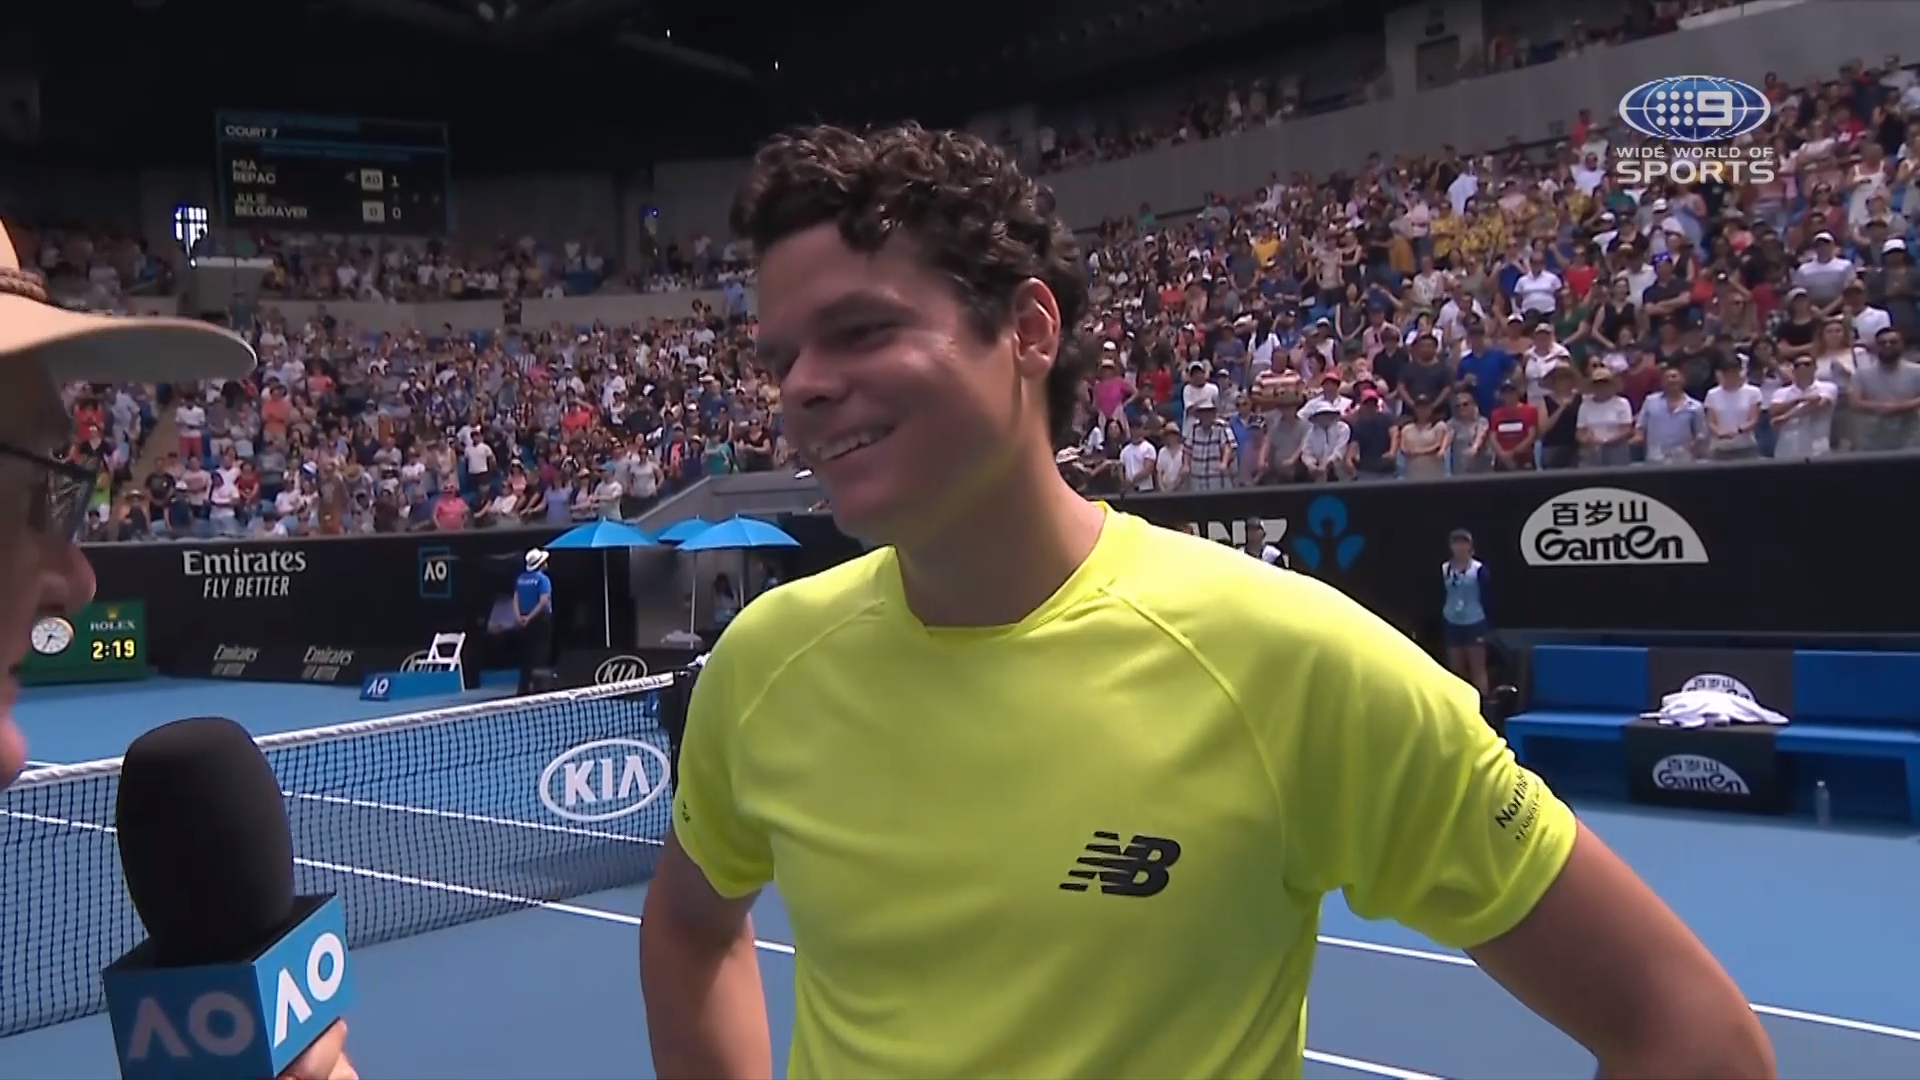 Raonic's hilarious response post match